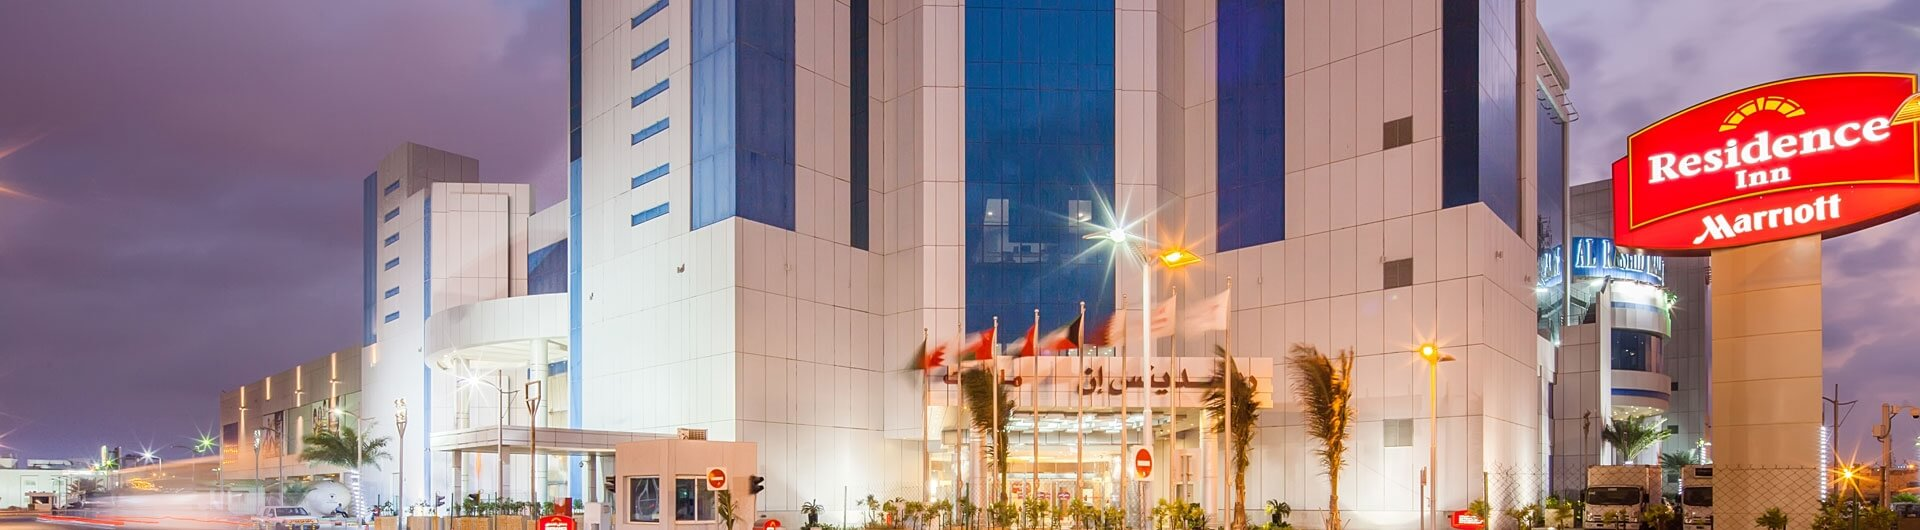 Residence Inn by Marriott - Jizan